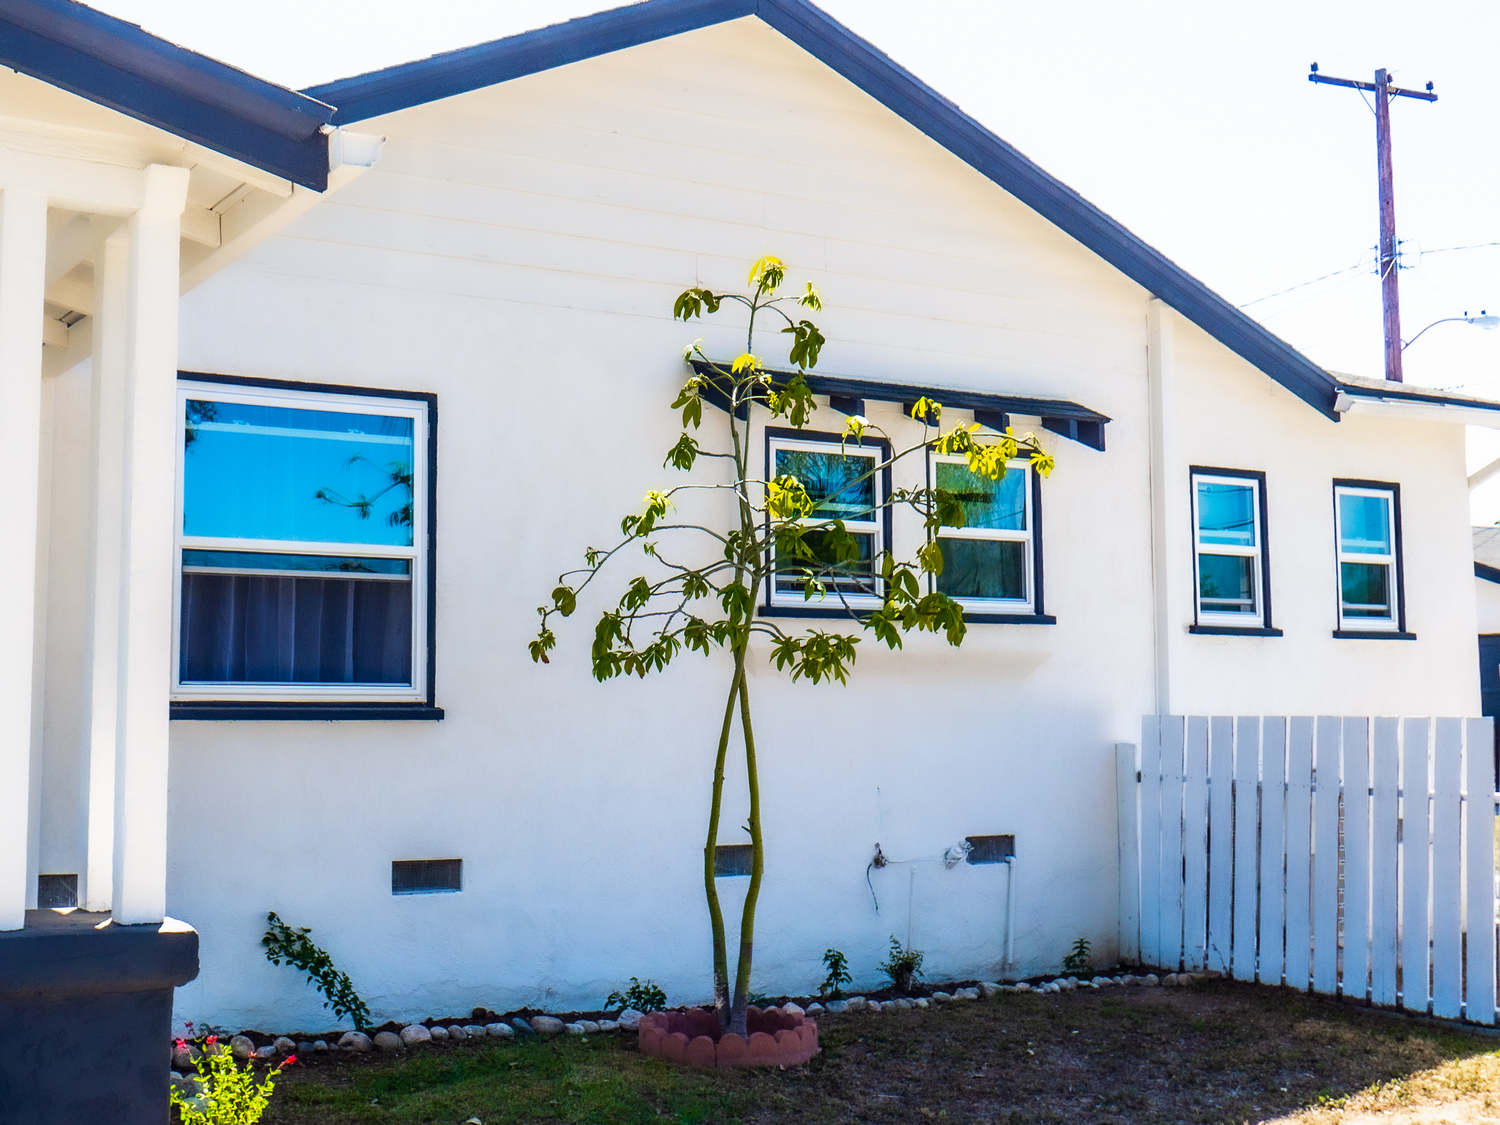 House with new replacement windows (10 Reasons Why You Should Replace Your Windows)